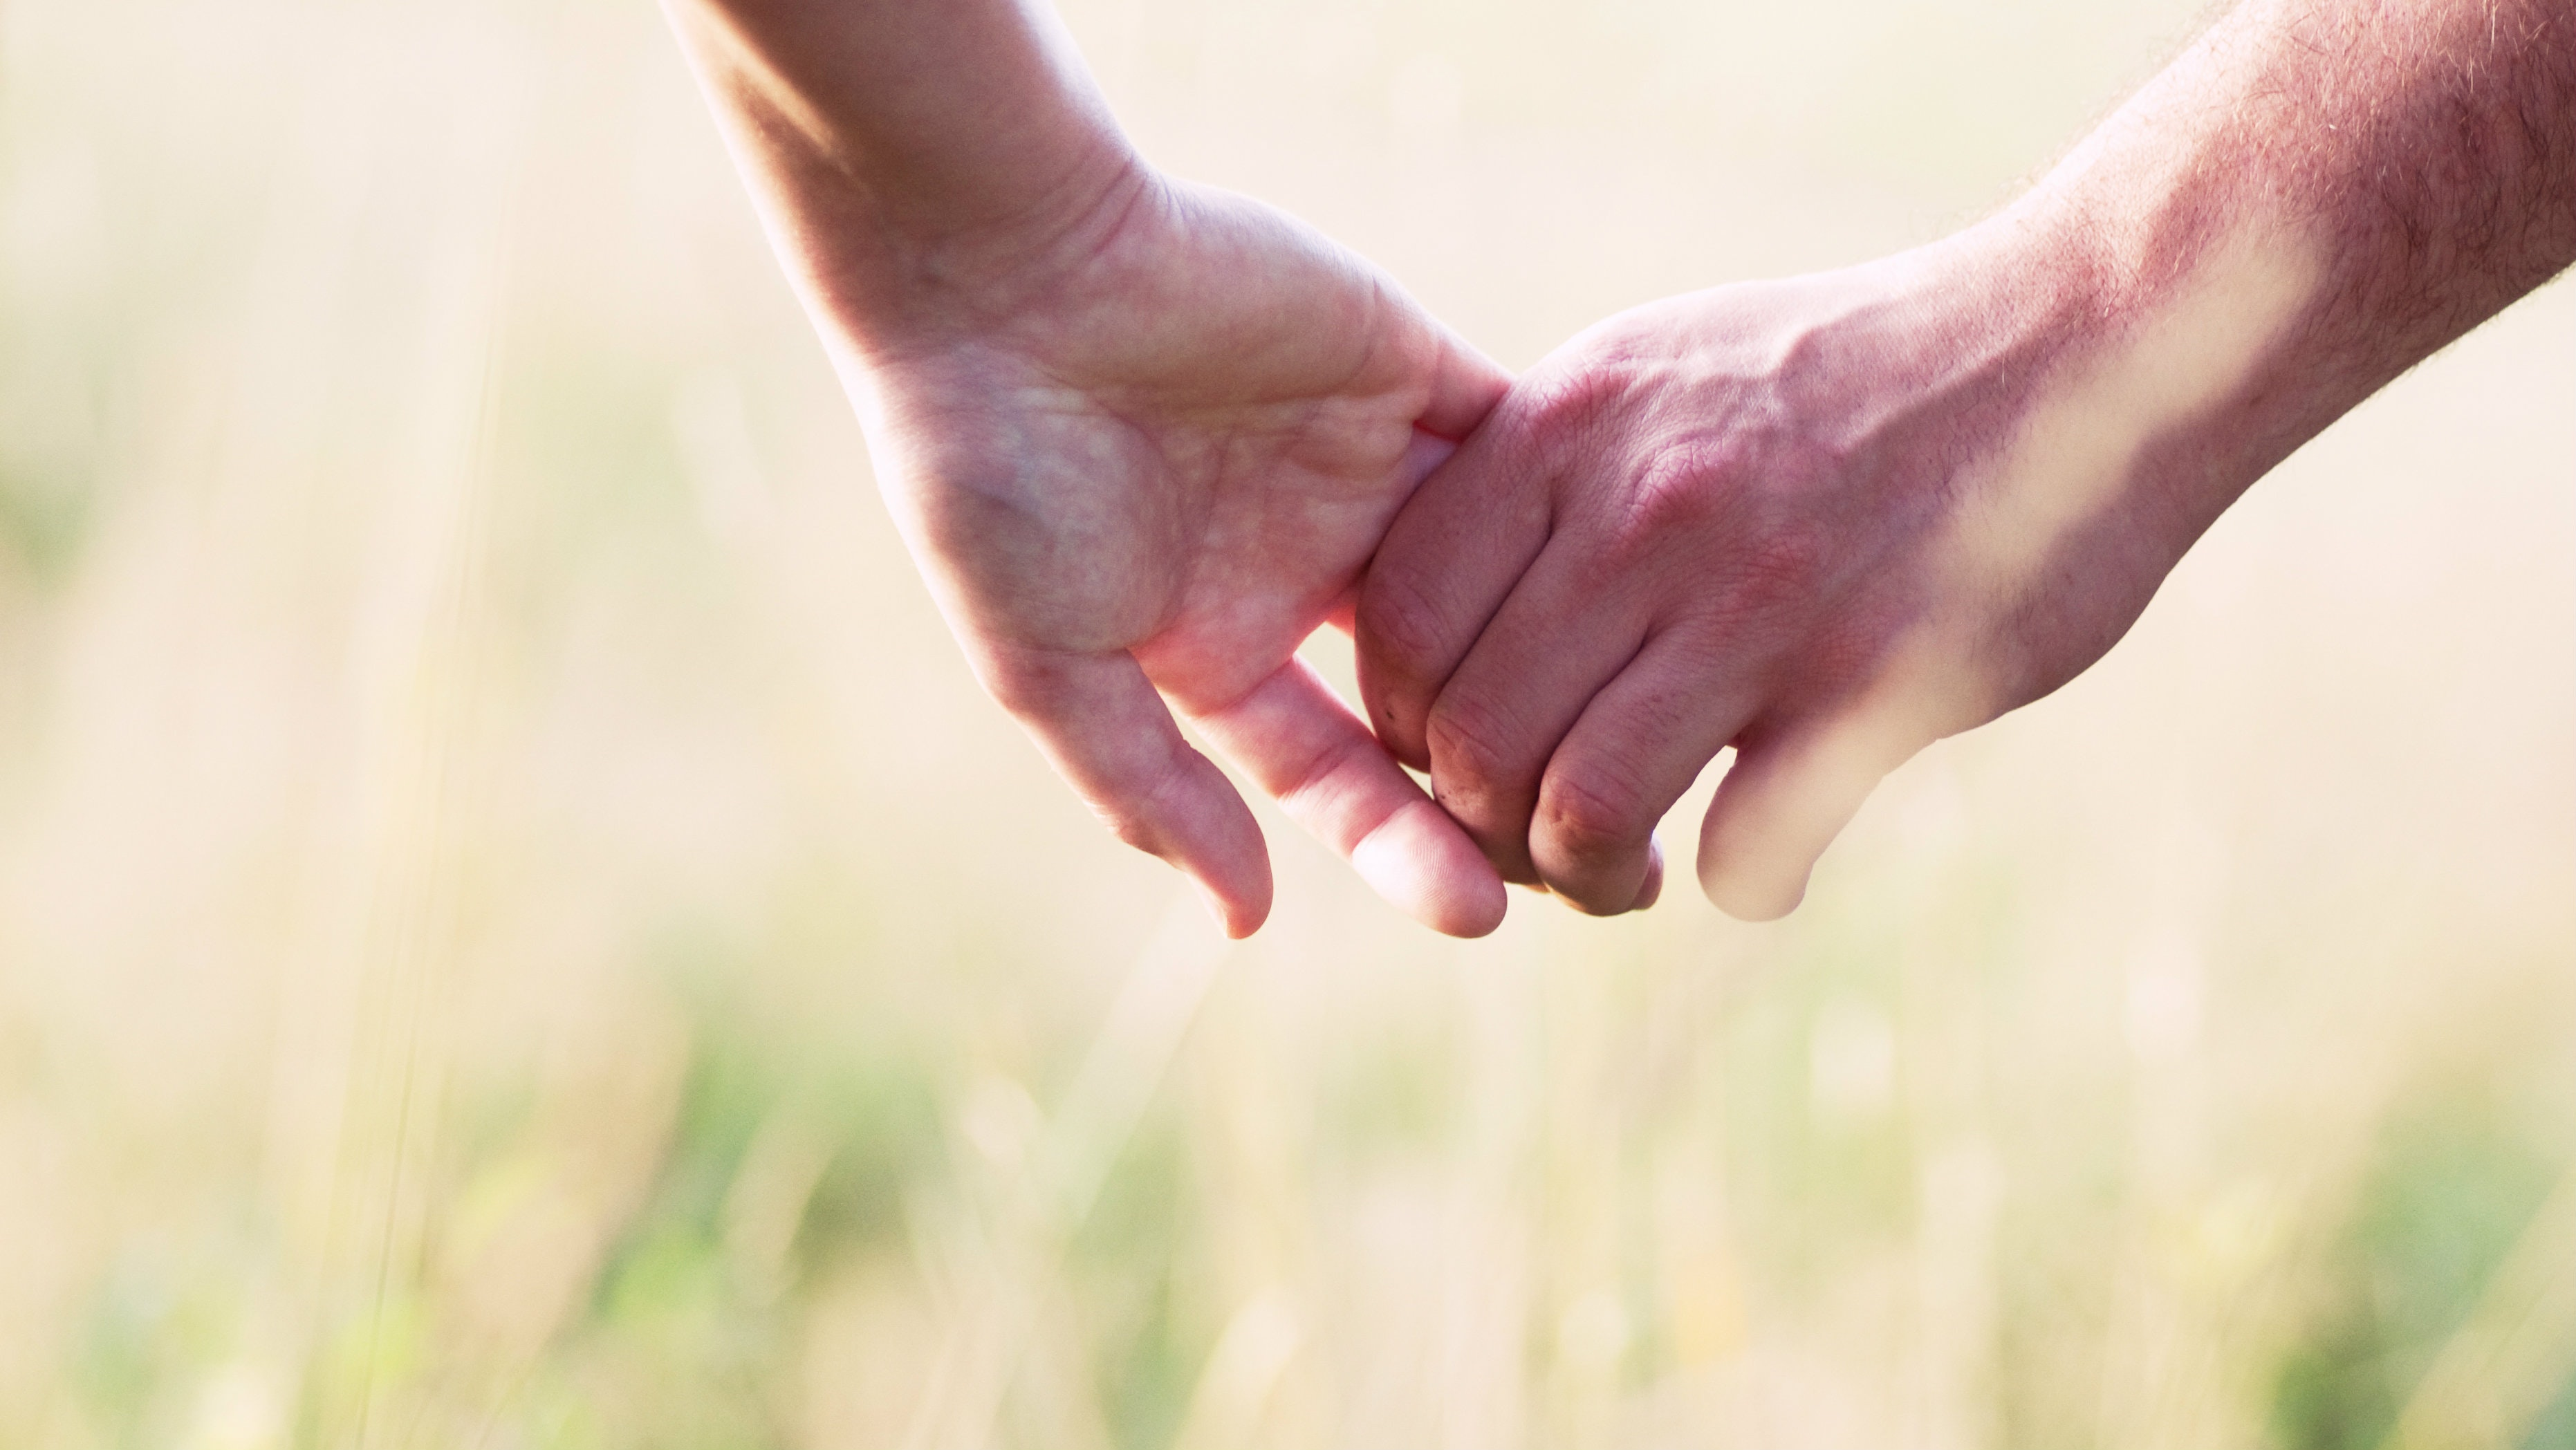 Ten Ways to Pray for Your Wife